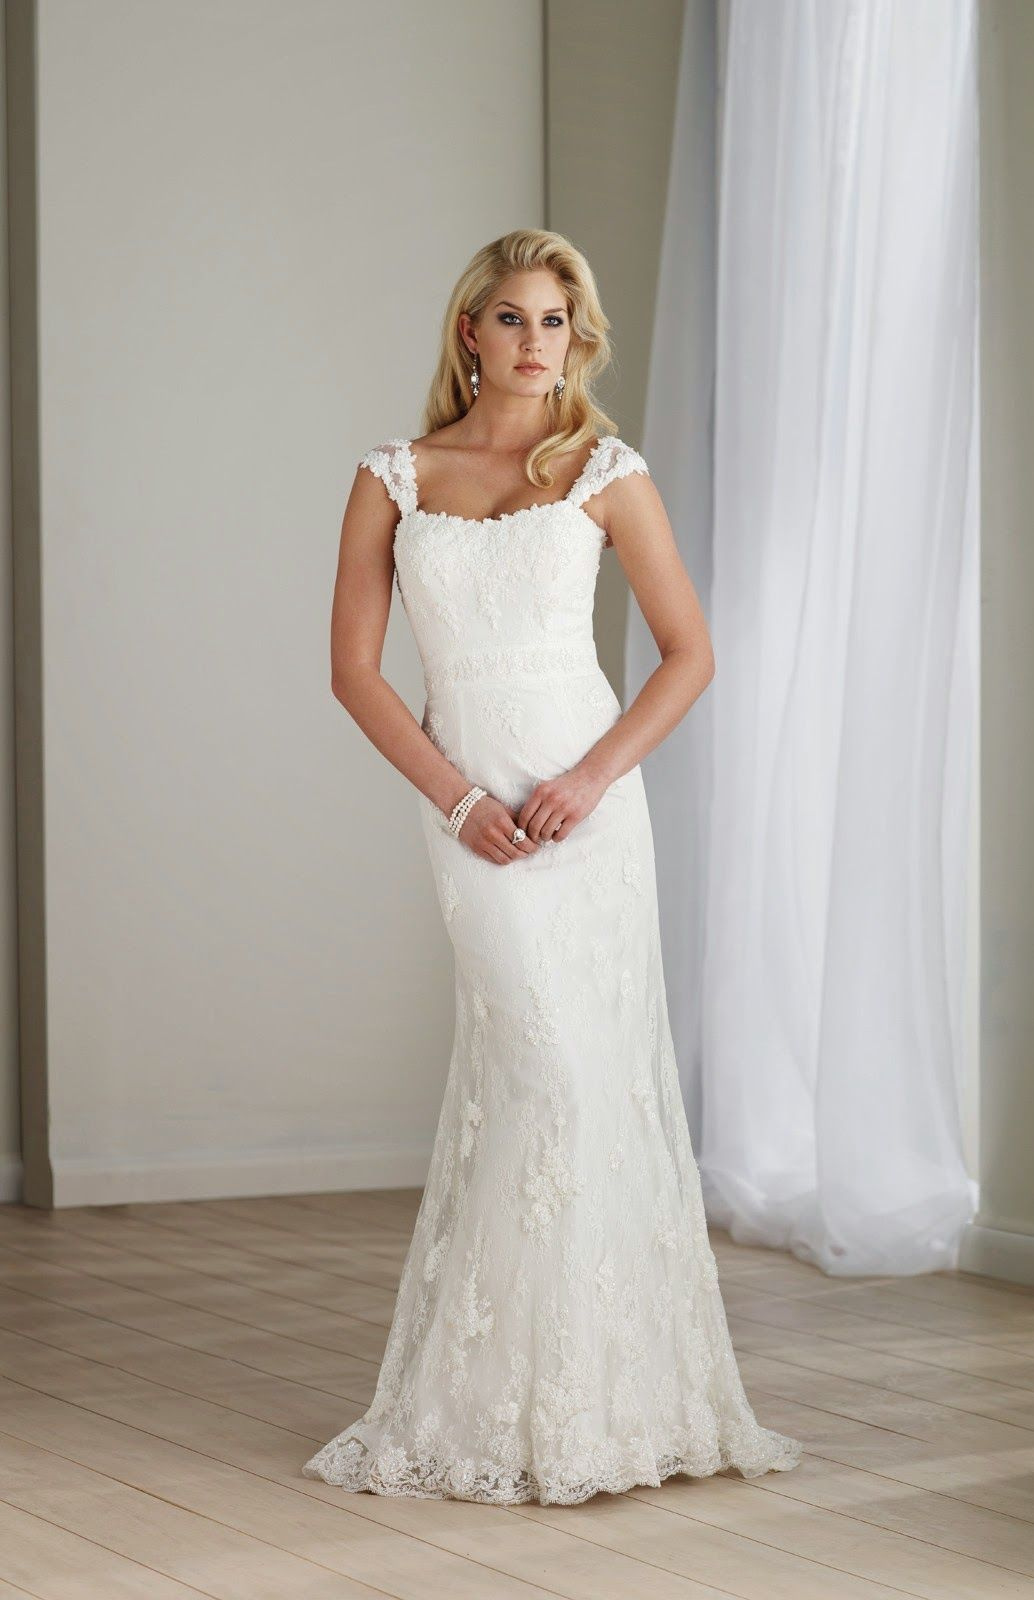 Wedding dresses for older brides over 40 50 60 70 for Older brides wedding dresses